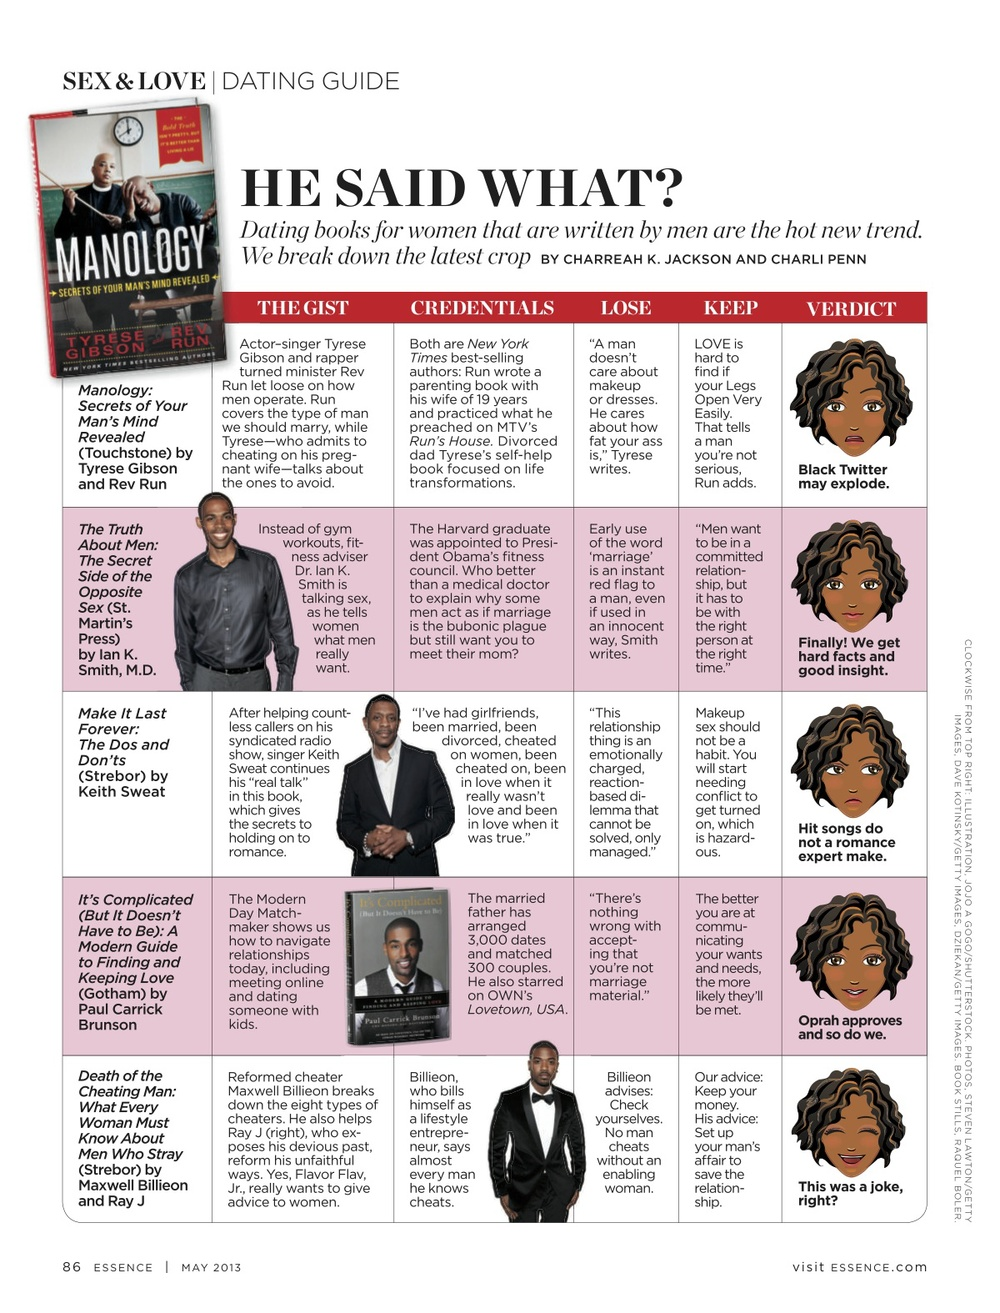 He Said What?, ESSENCE May 2013